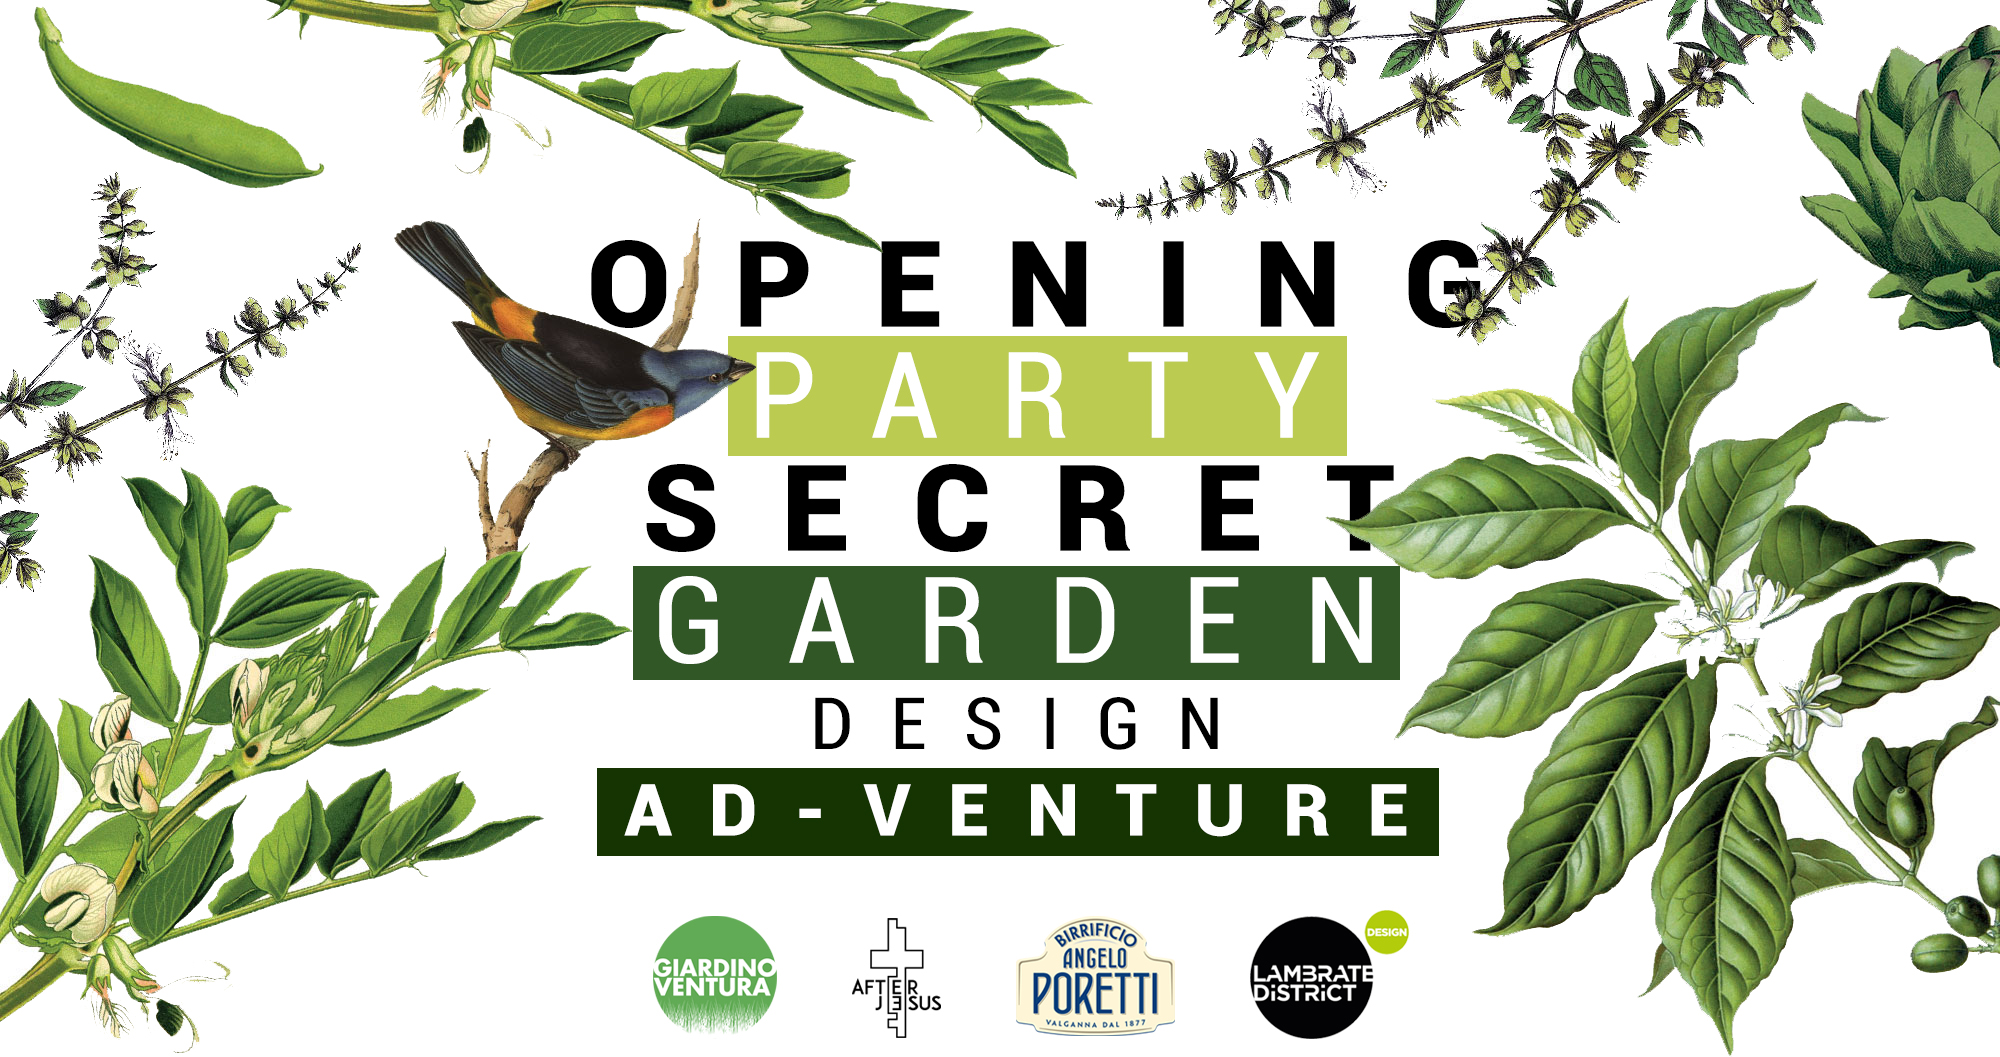 Opening Party Secret Garden / Design Ad-Venture